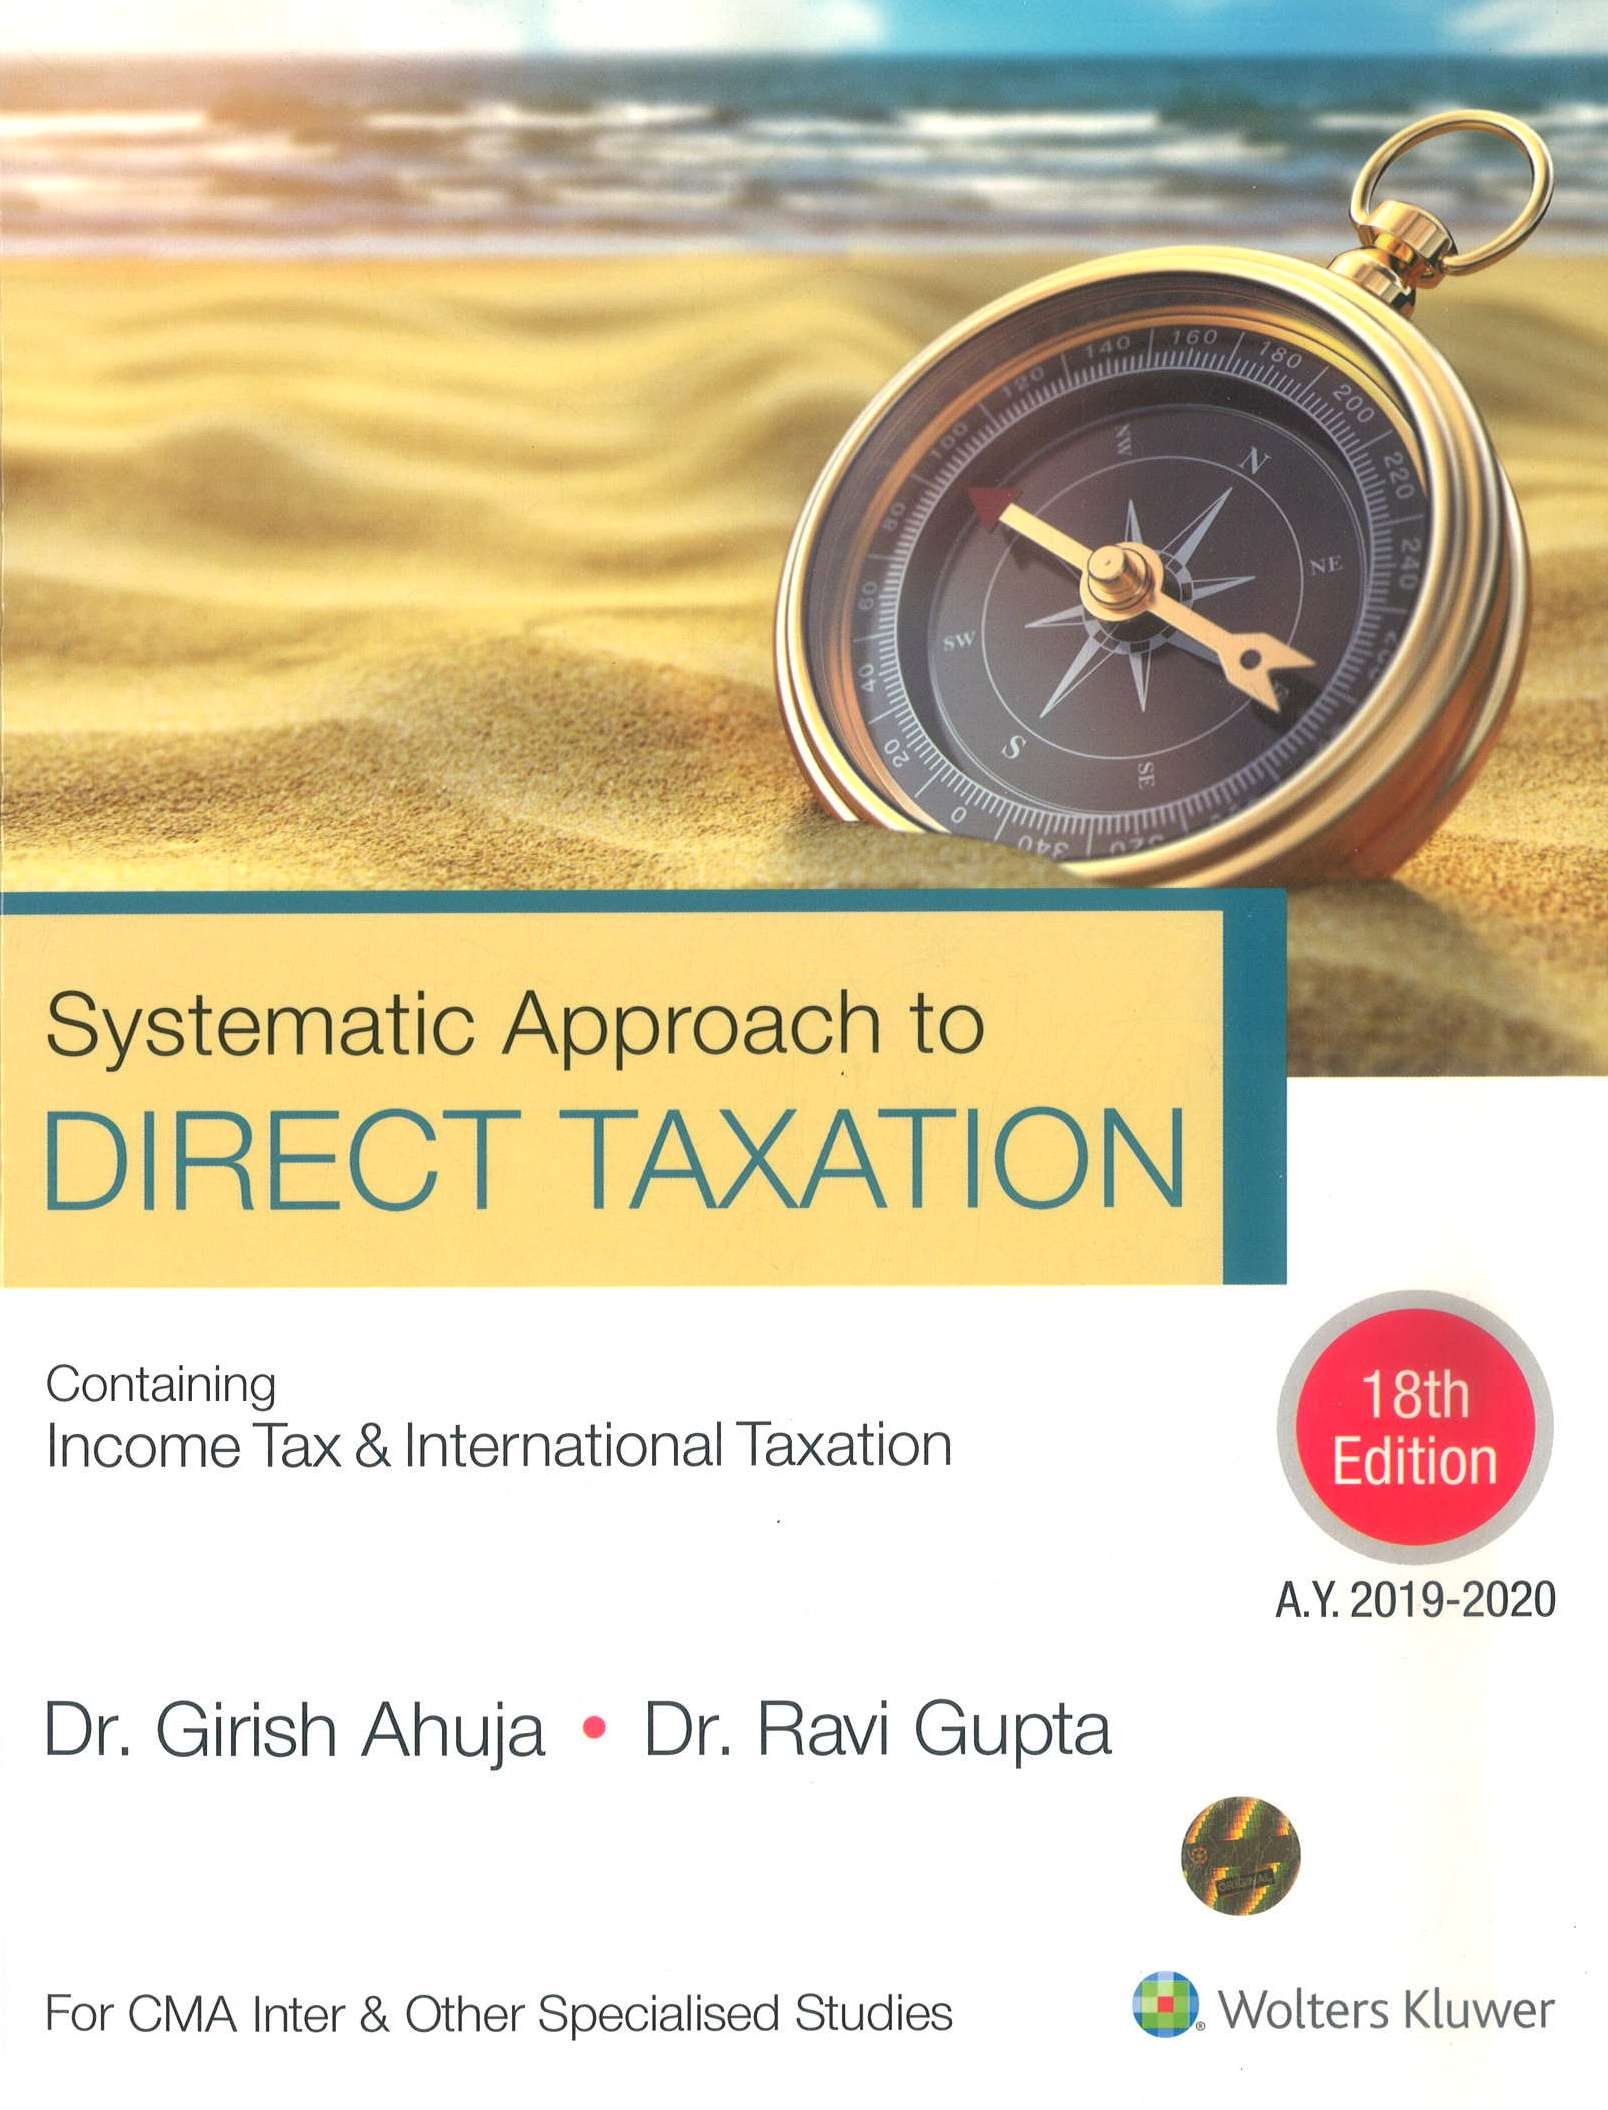 CCH Systematic Approach to Direct Taxation- Containing Income Tax & International Taxation, 18th edition 2019 for June 2019 Exam for CMA Inter by Dr. Girish Ahuja and Dr. Ravi Gupta